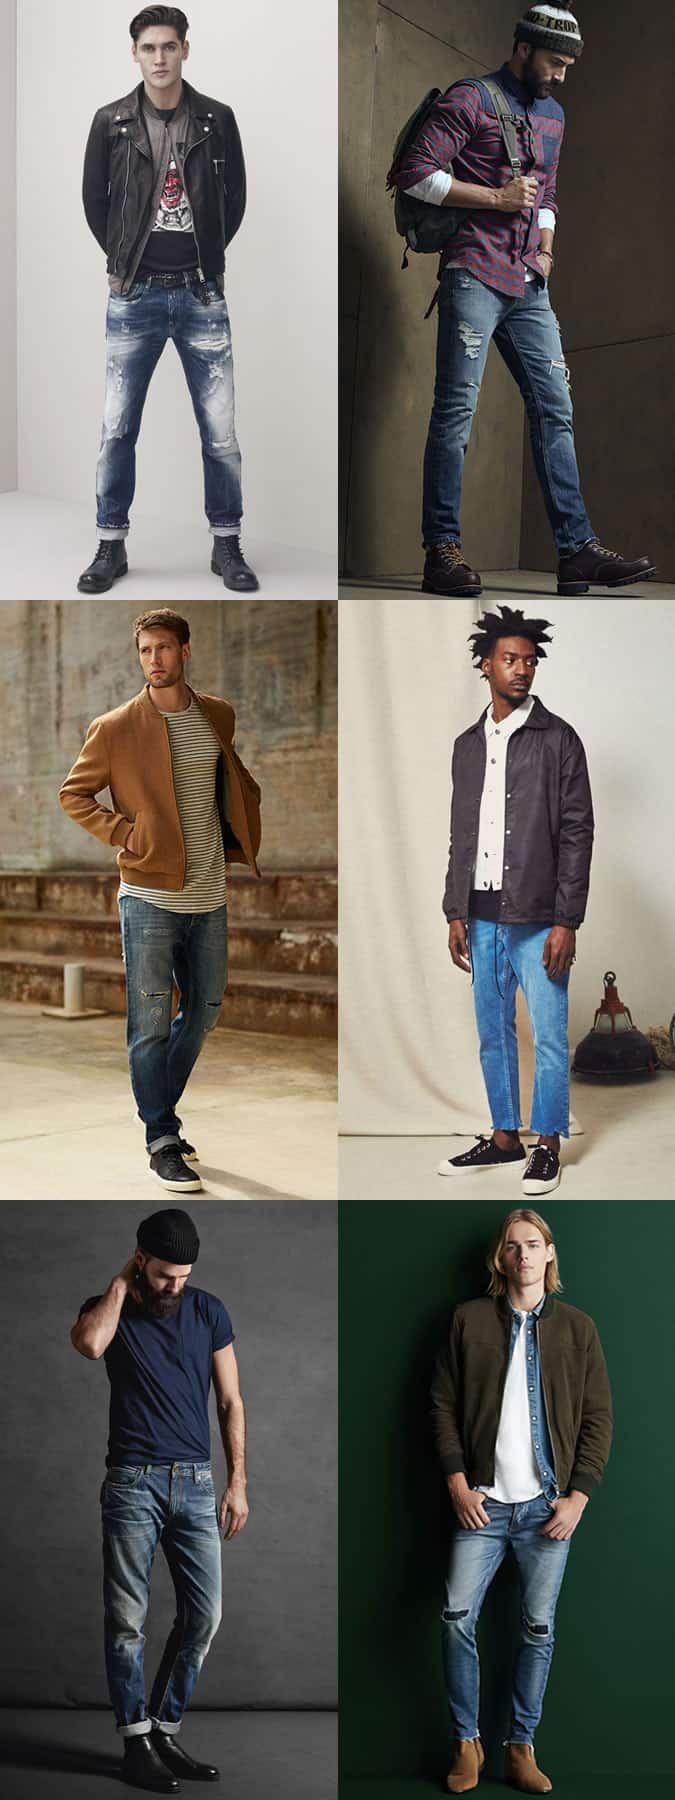 Men's Distressed and Faded Denim Jeans Outfit Inspiration Lookbook